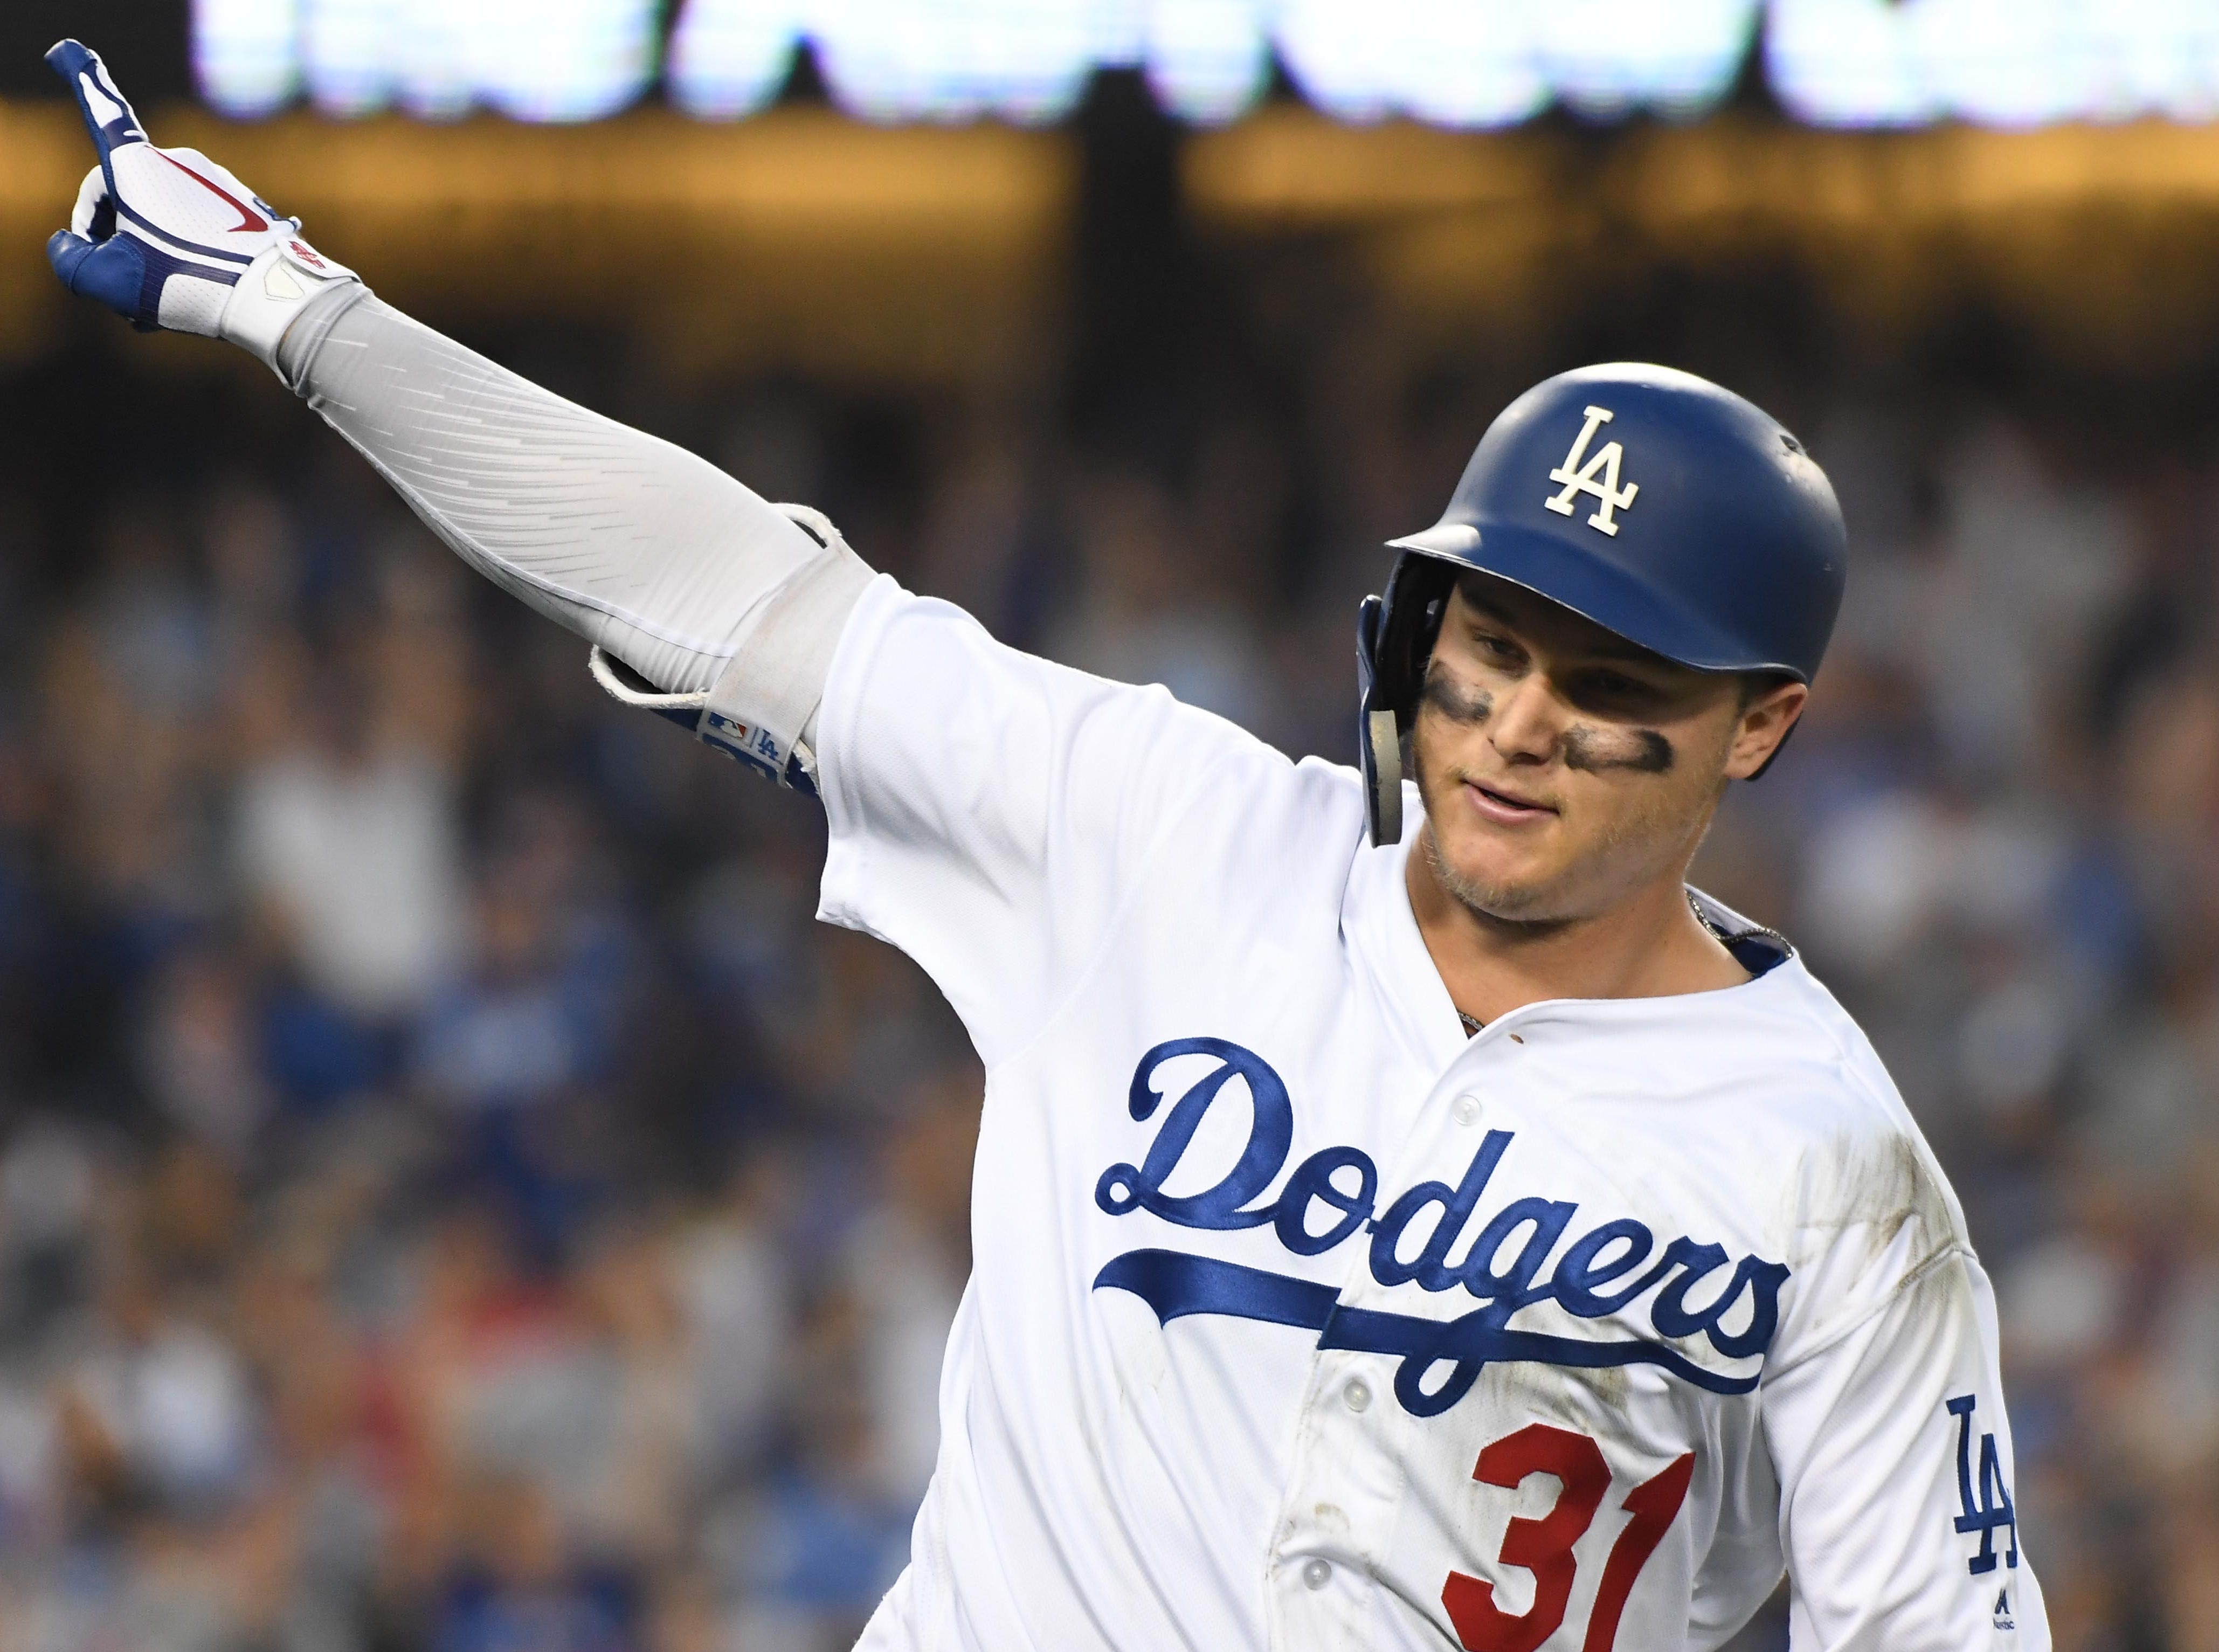 Game 3 at Dodger Stadium: Joc Pederson celebrates after hitting a solo homer in the thirdOct 26, 2018; Los Angeles, CA, USA; Los Angeles Dodgers outfielder Joc Pederson (31) celebrates after hitting a solo home run against the Boston Red Sox in the third inning in game three of the 2018 World Series at Dodger Stadium. Mandatory Credit: Richard Mackson-USA TODAY Sports.